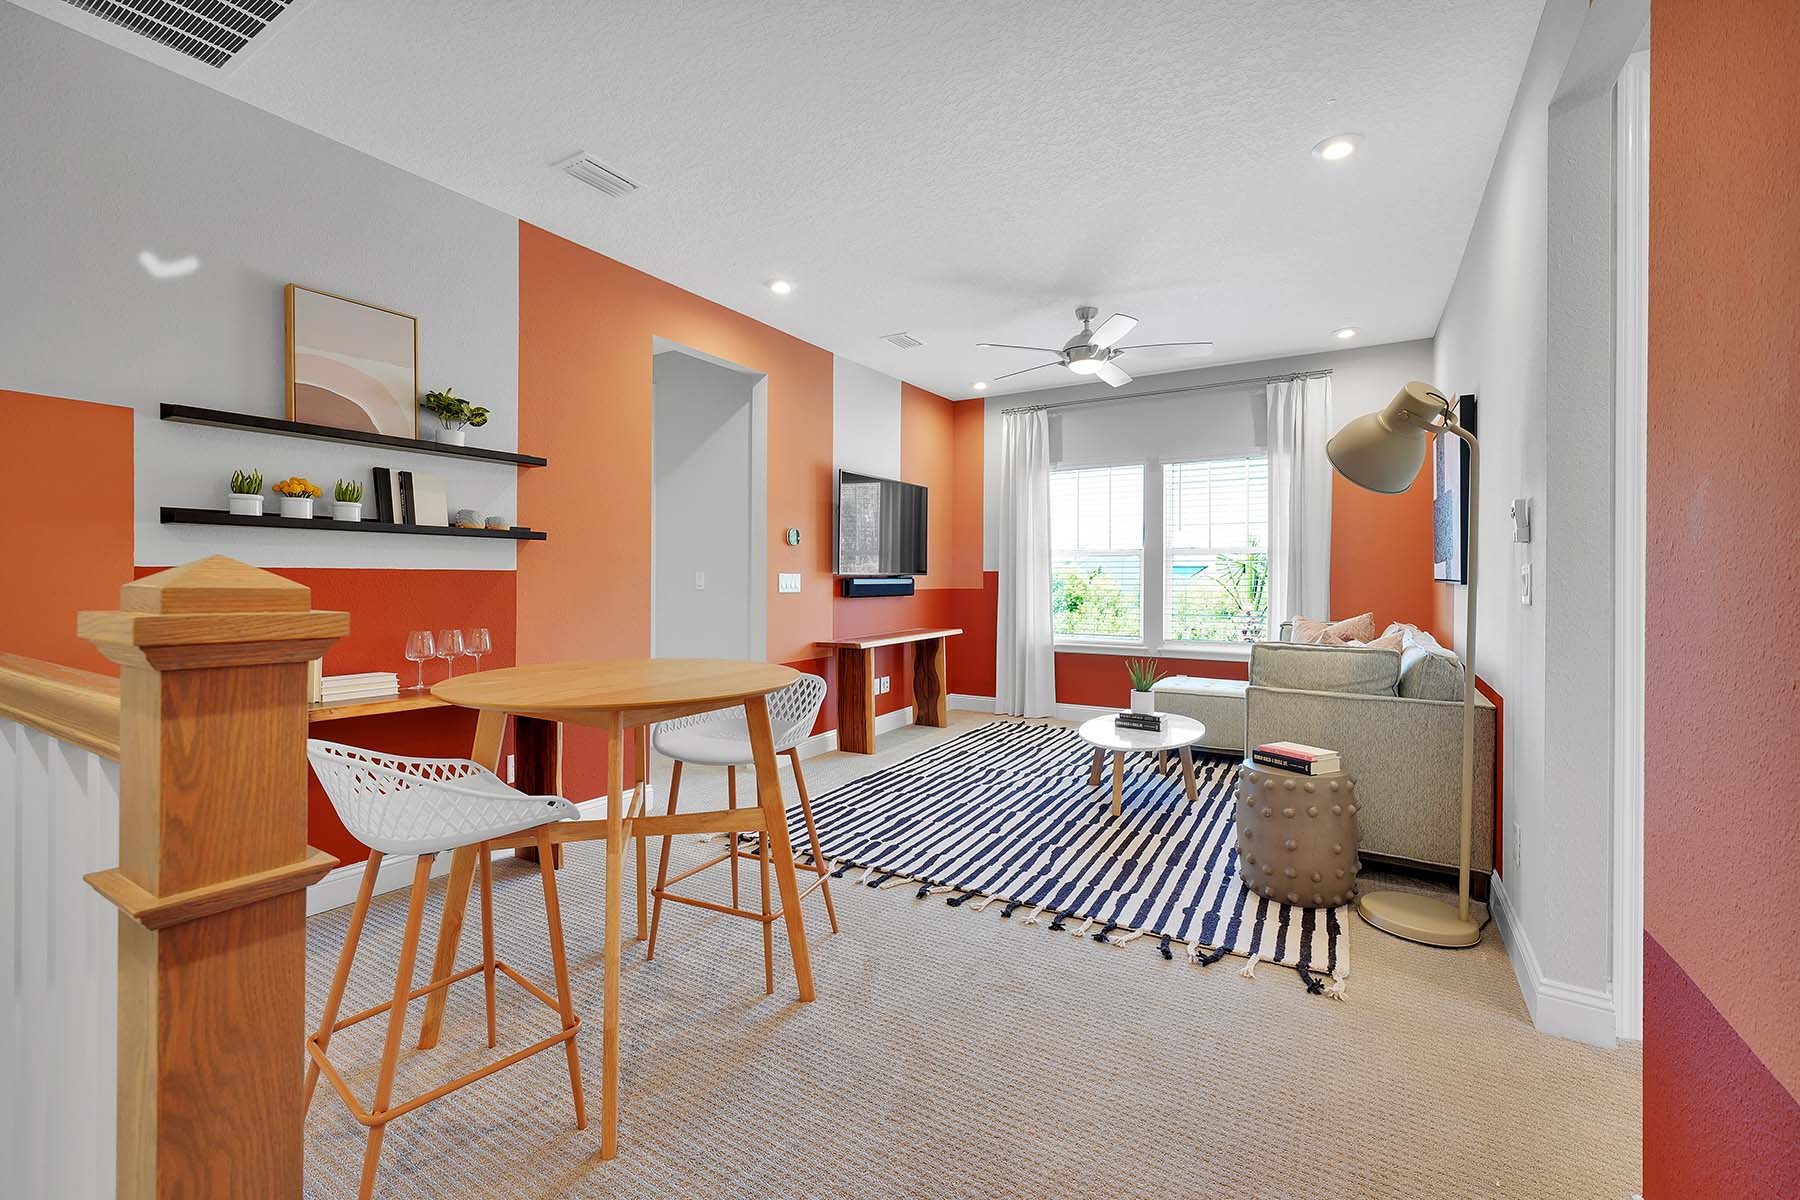 Waverly Plan Loft at Pablo Cove in Jacksonville Florida by Mattamy Homes